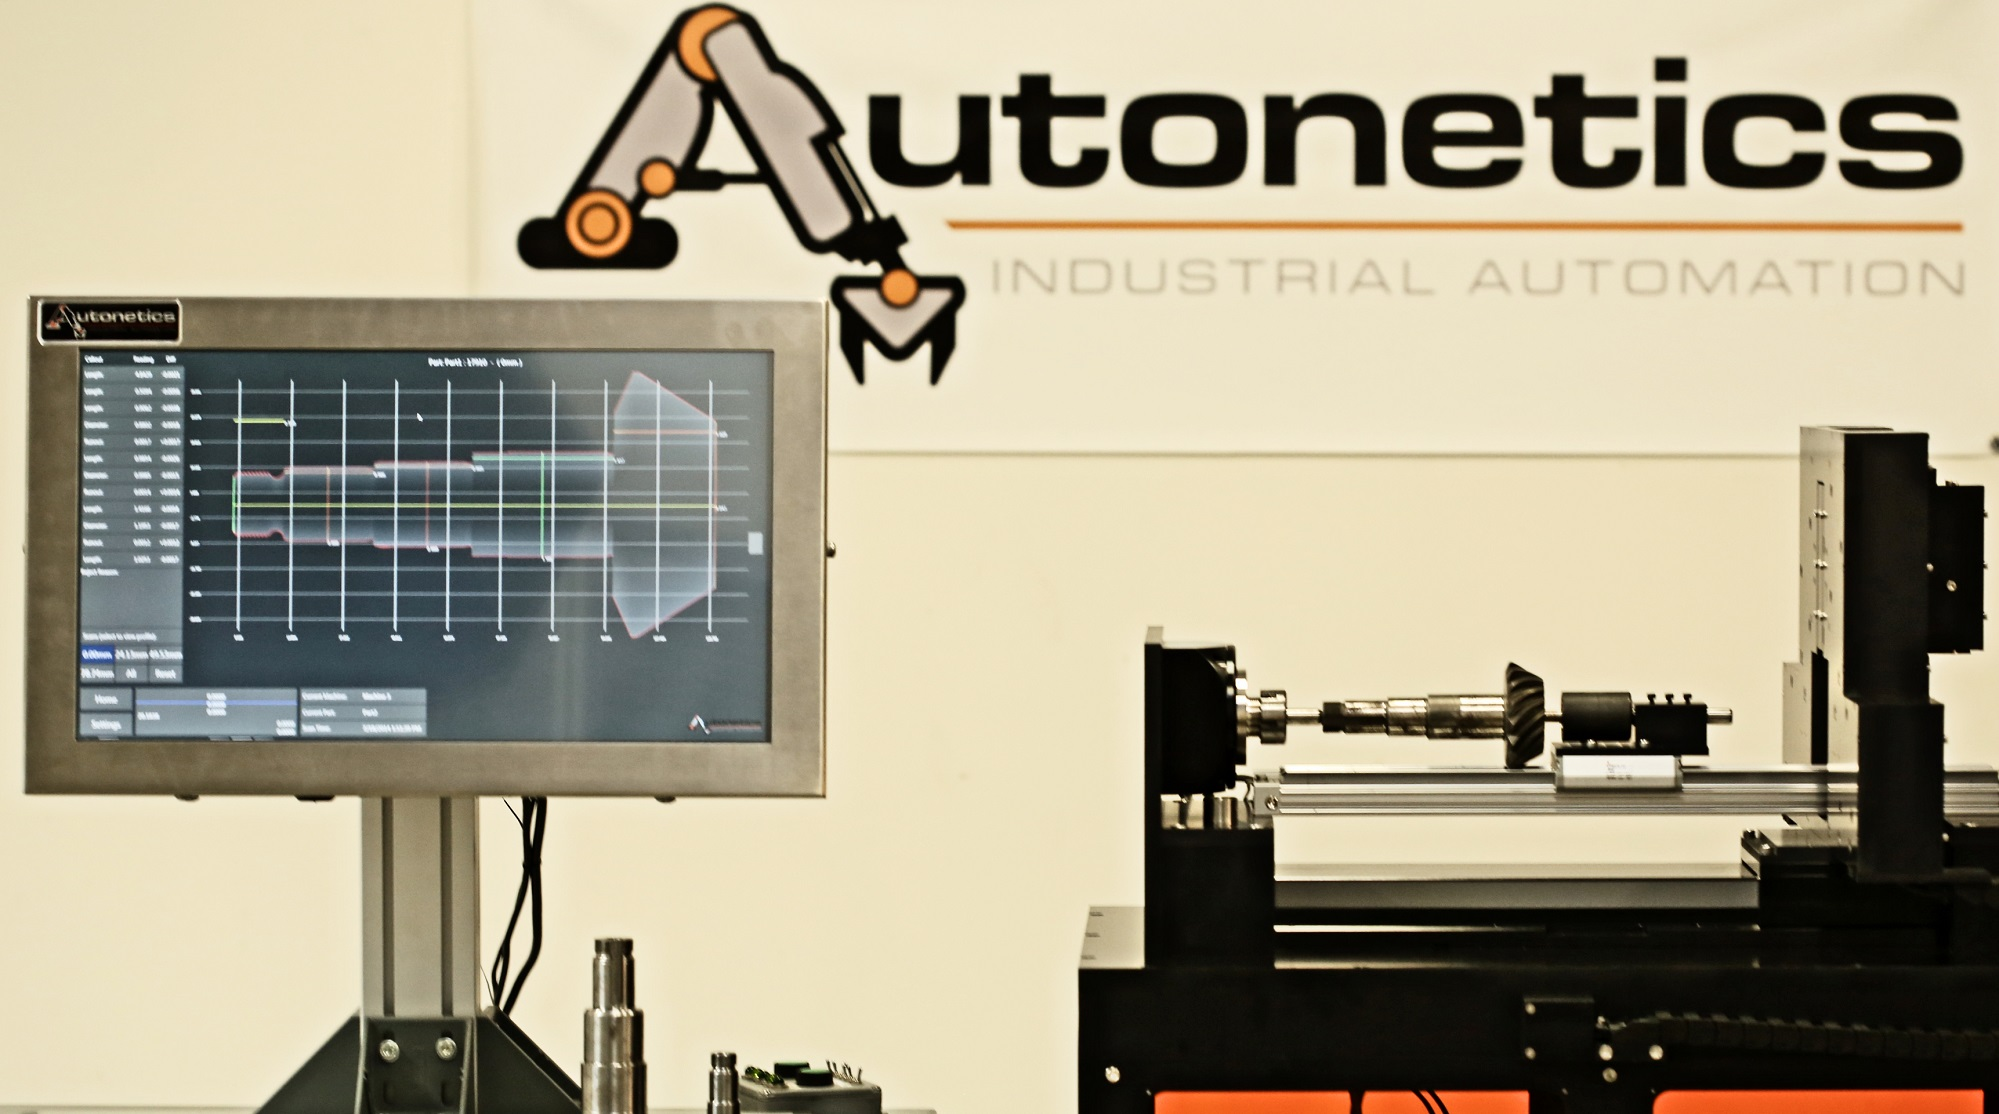 Autonetics Logo and HMI